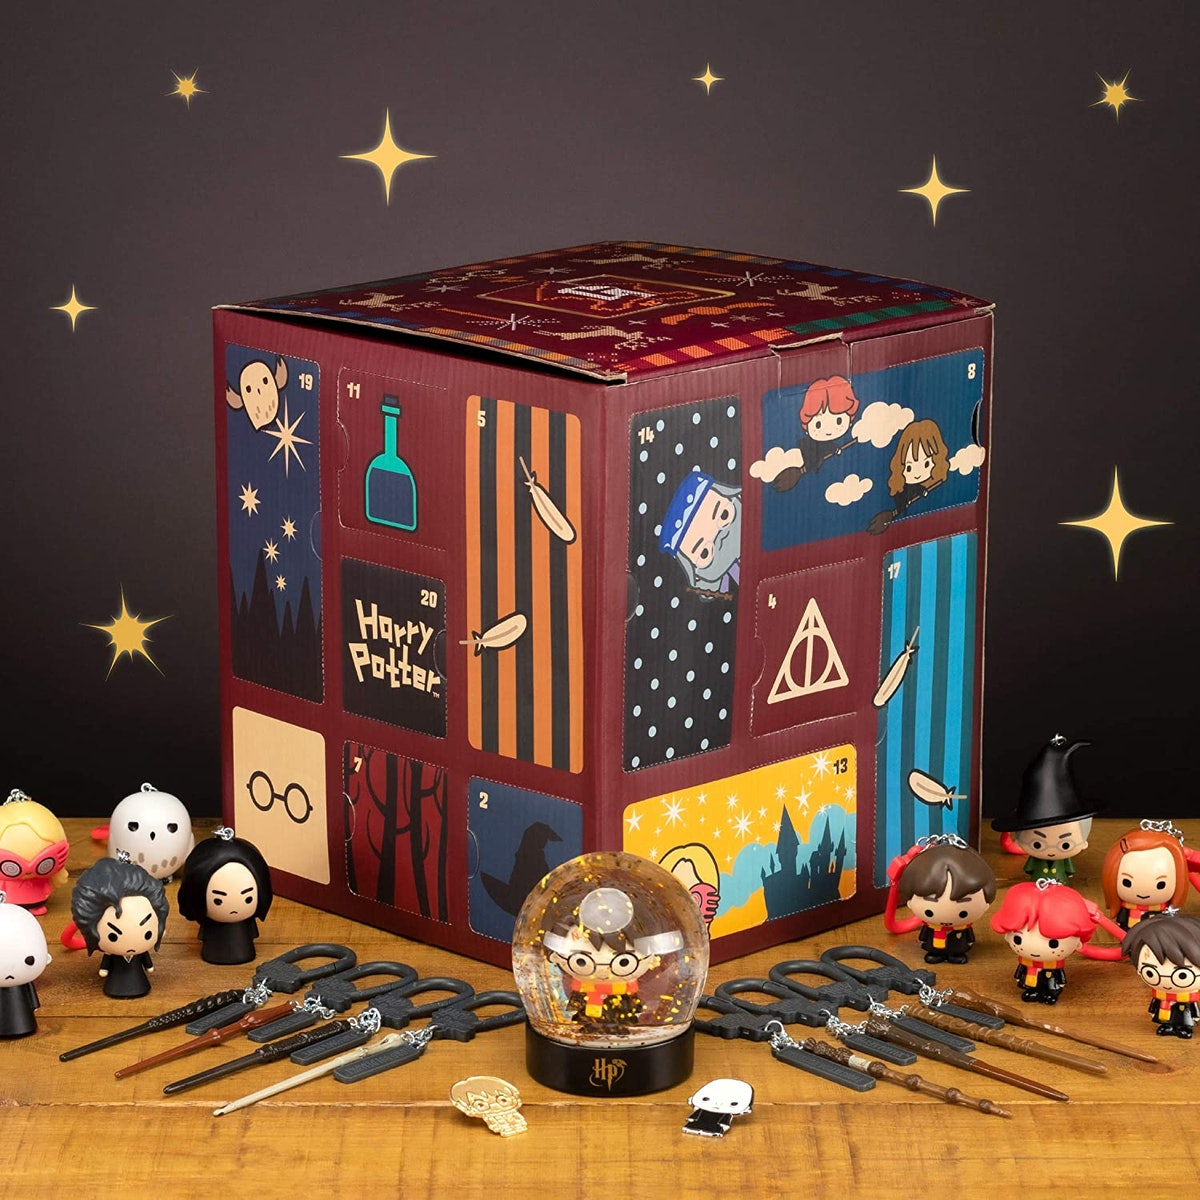 Paladone Harry Potter Advent Calendar Cube with 24 Gifts, Christmas Countdown